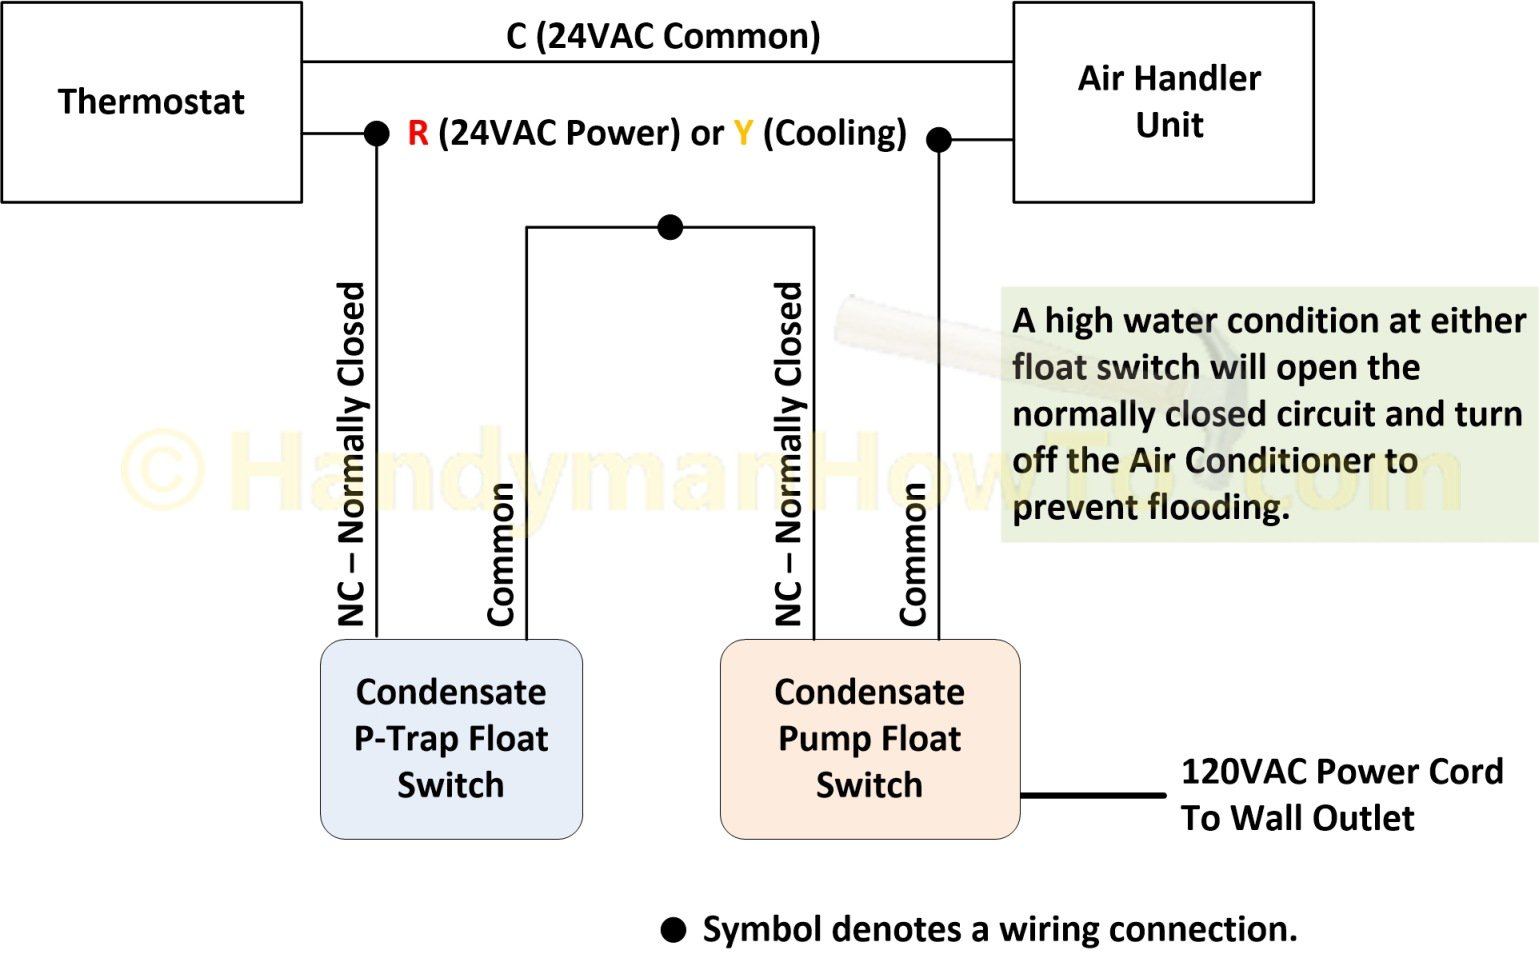 hight resolution of septic pump float switch wiring diagram download septic tank float switch wiring diagram best how download wiring diagram